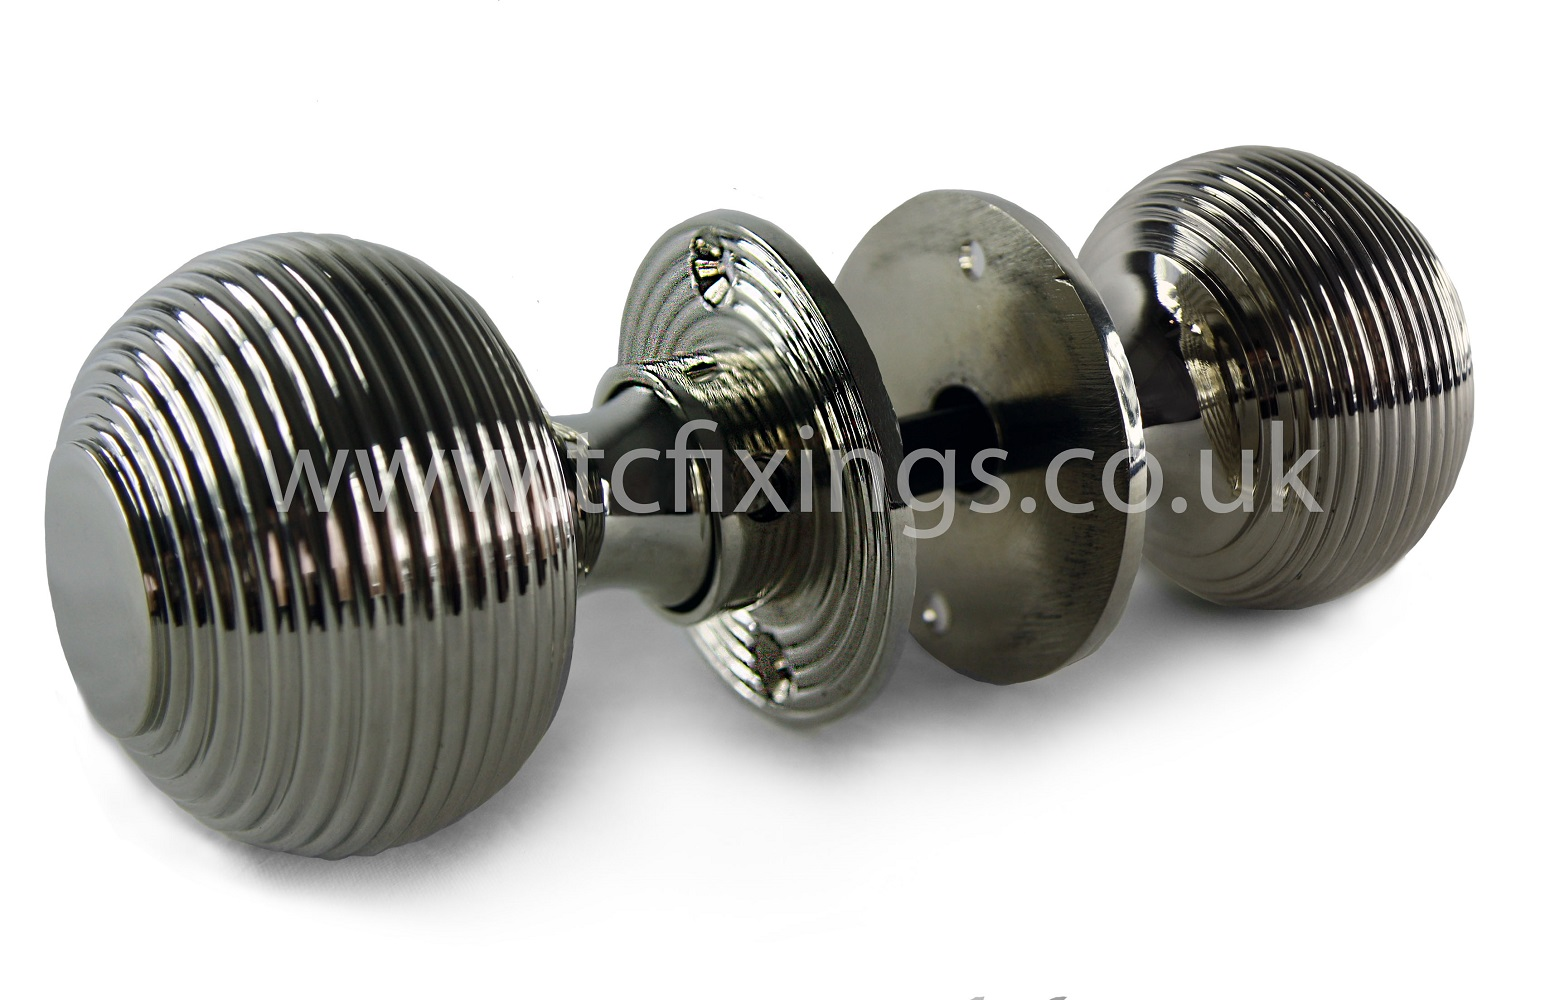 MDS DBEE 50mm Beehive Knob Polished Nickel